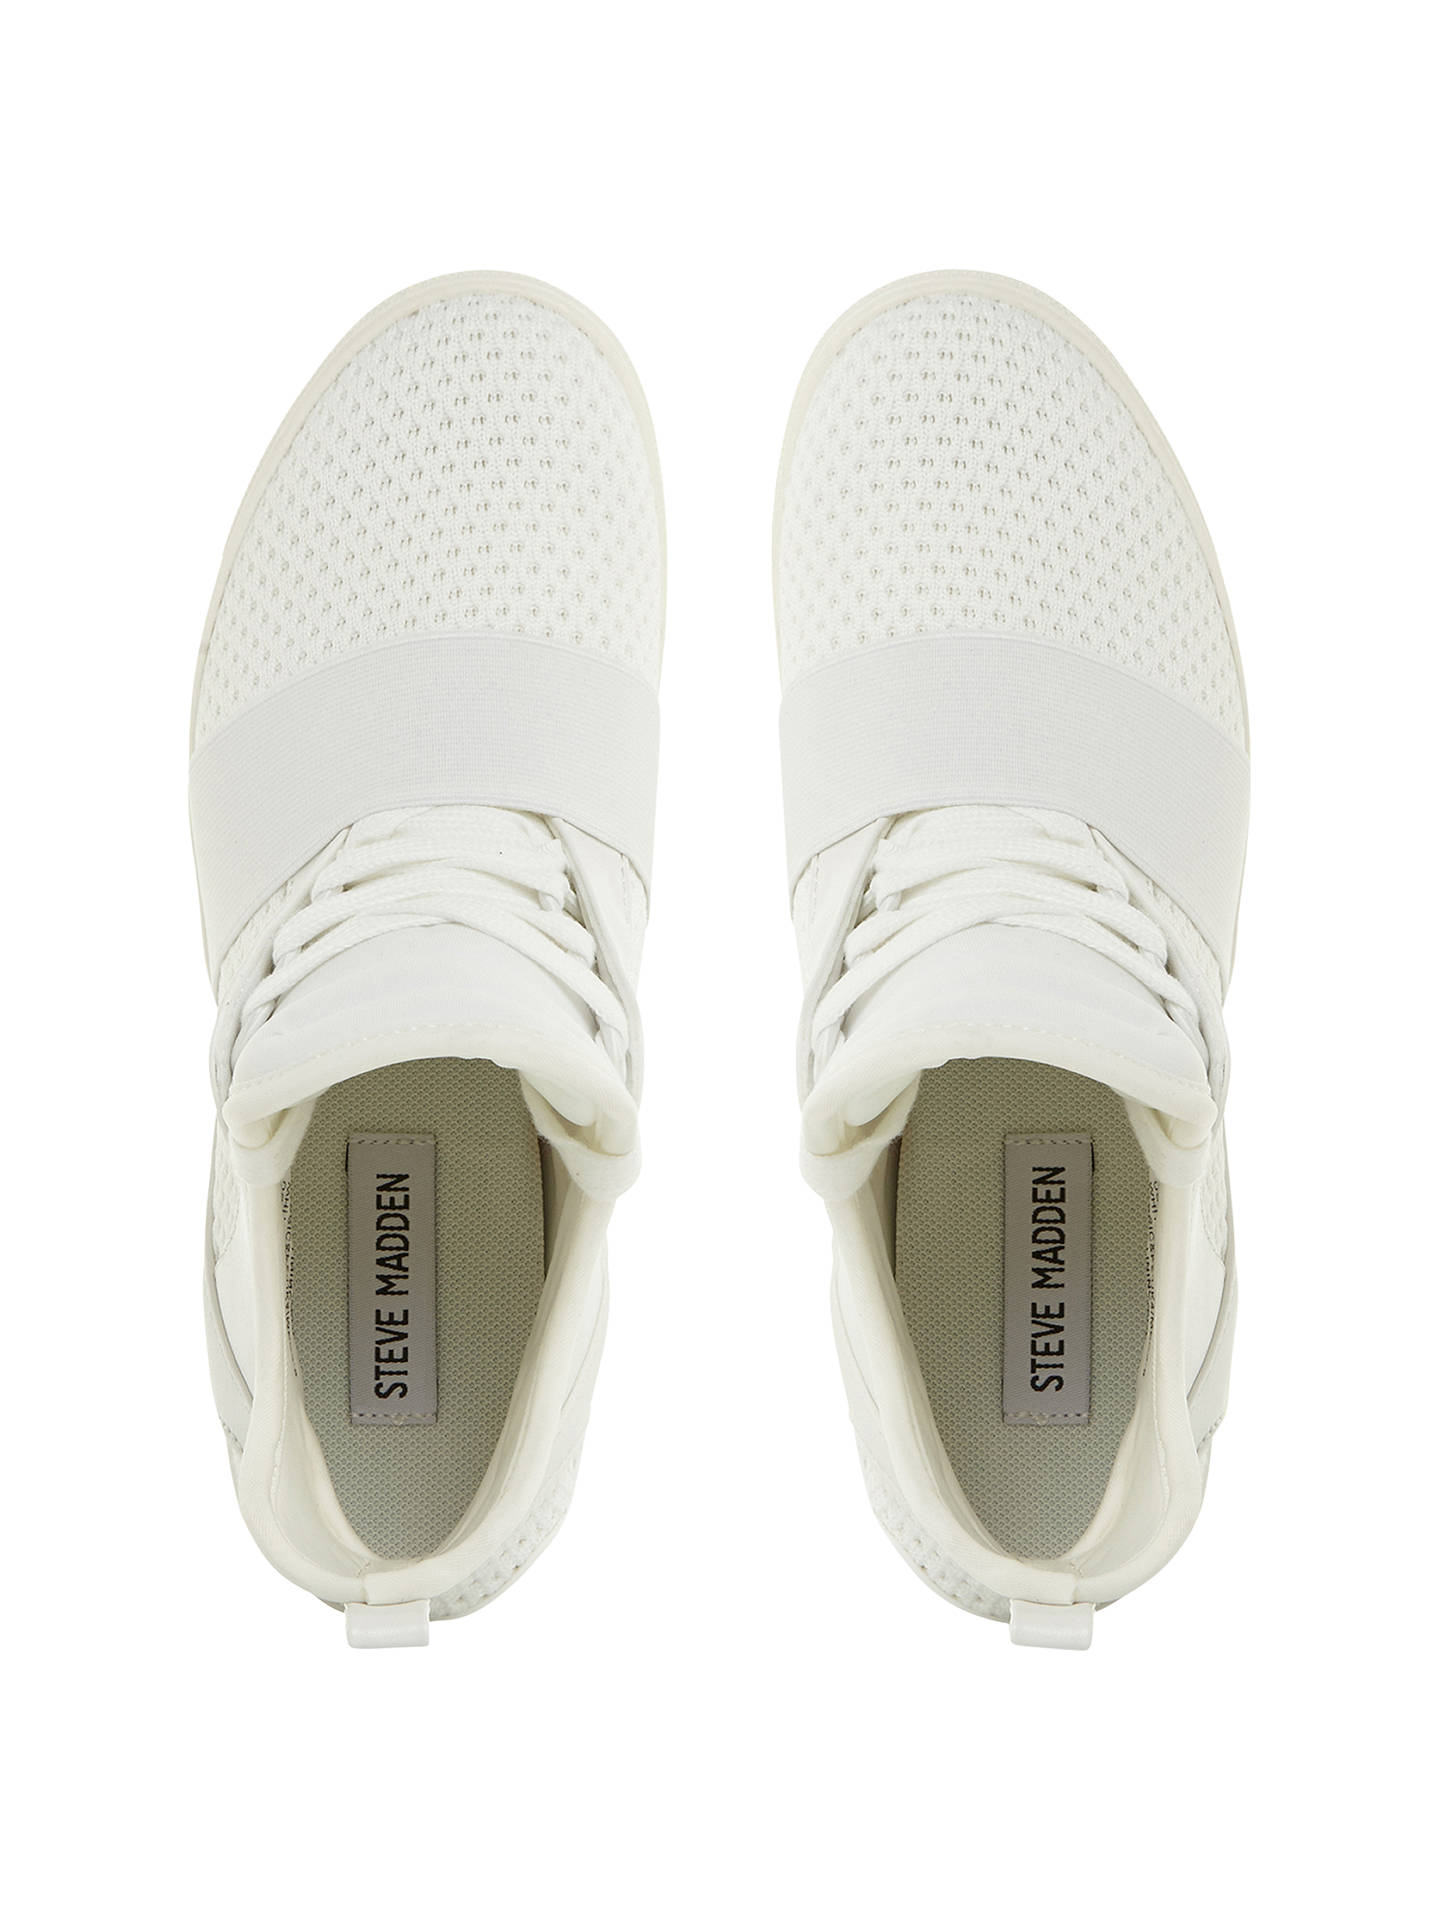 9dbabaae749 Steve Madden Lexi Concealed Wedge Trainers at John Lewis & Partners